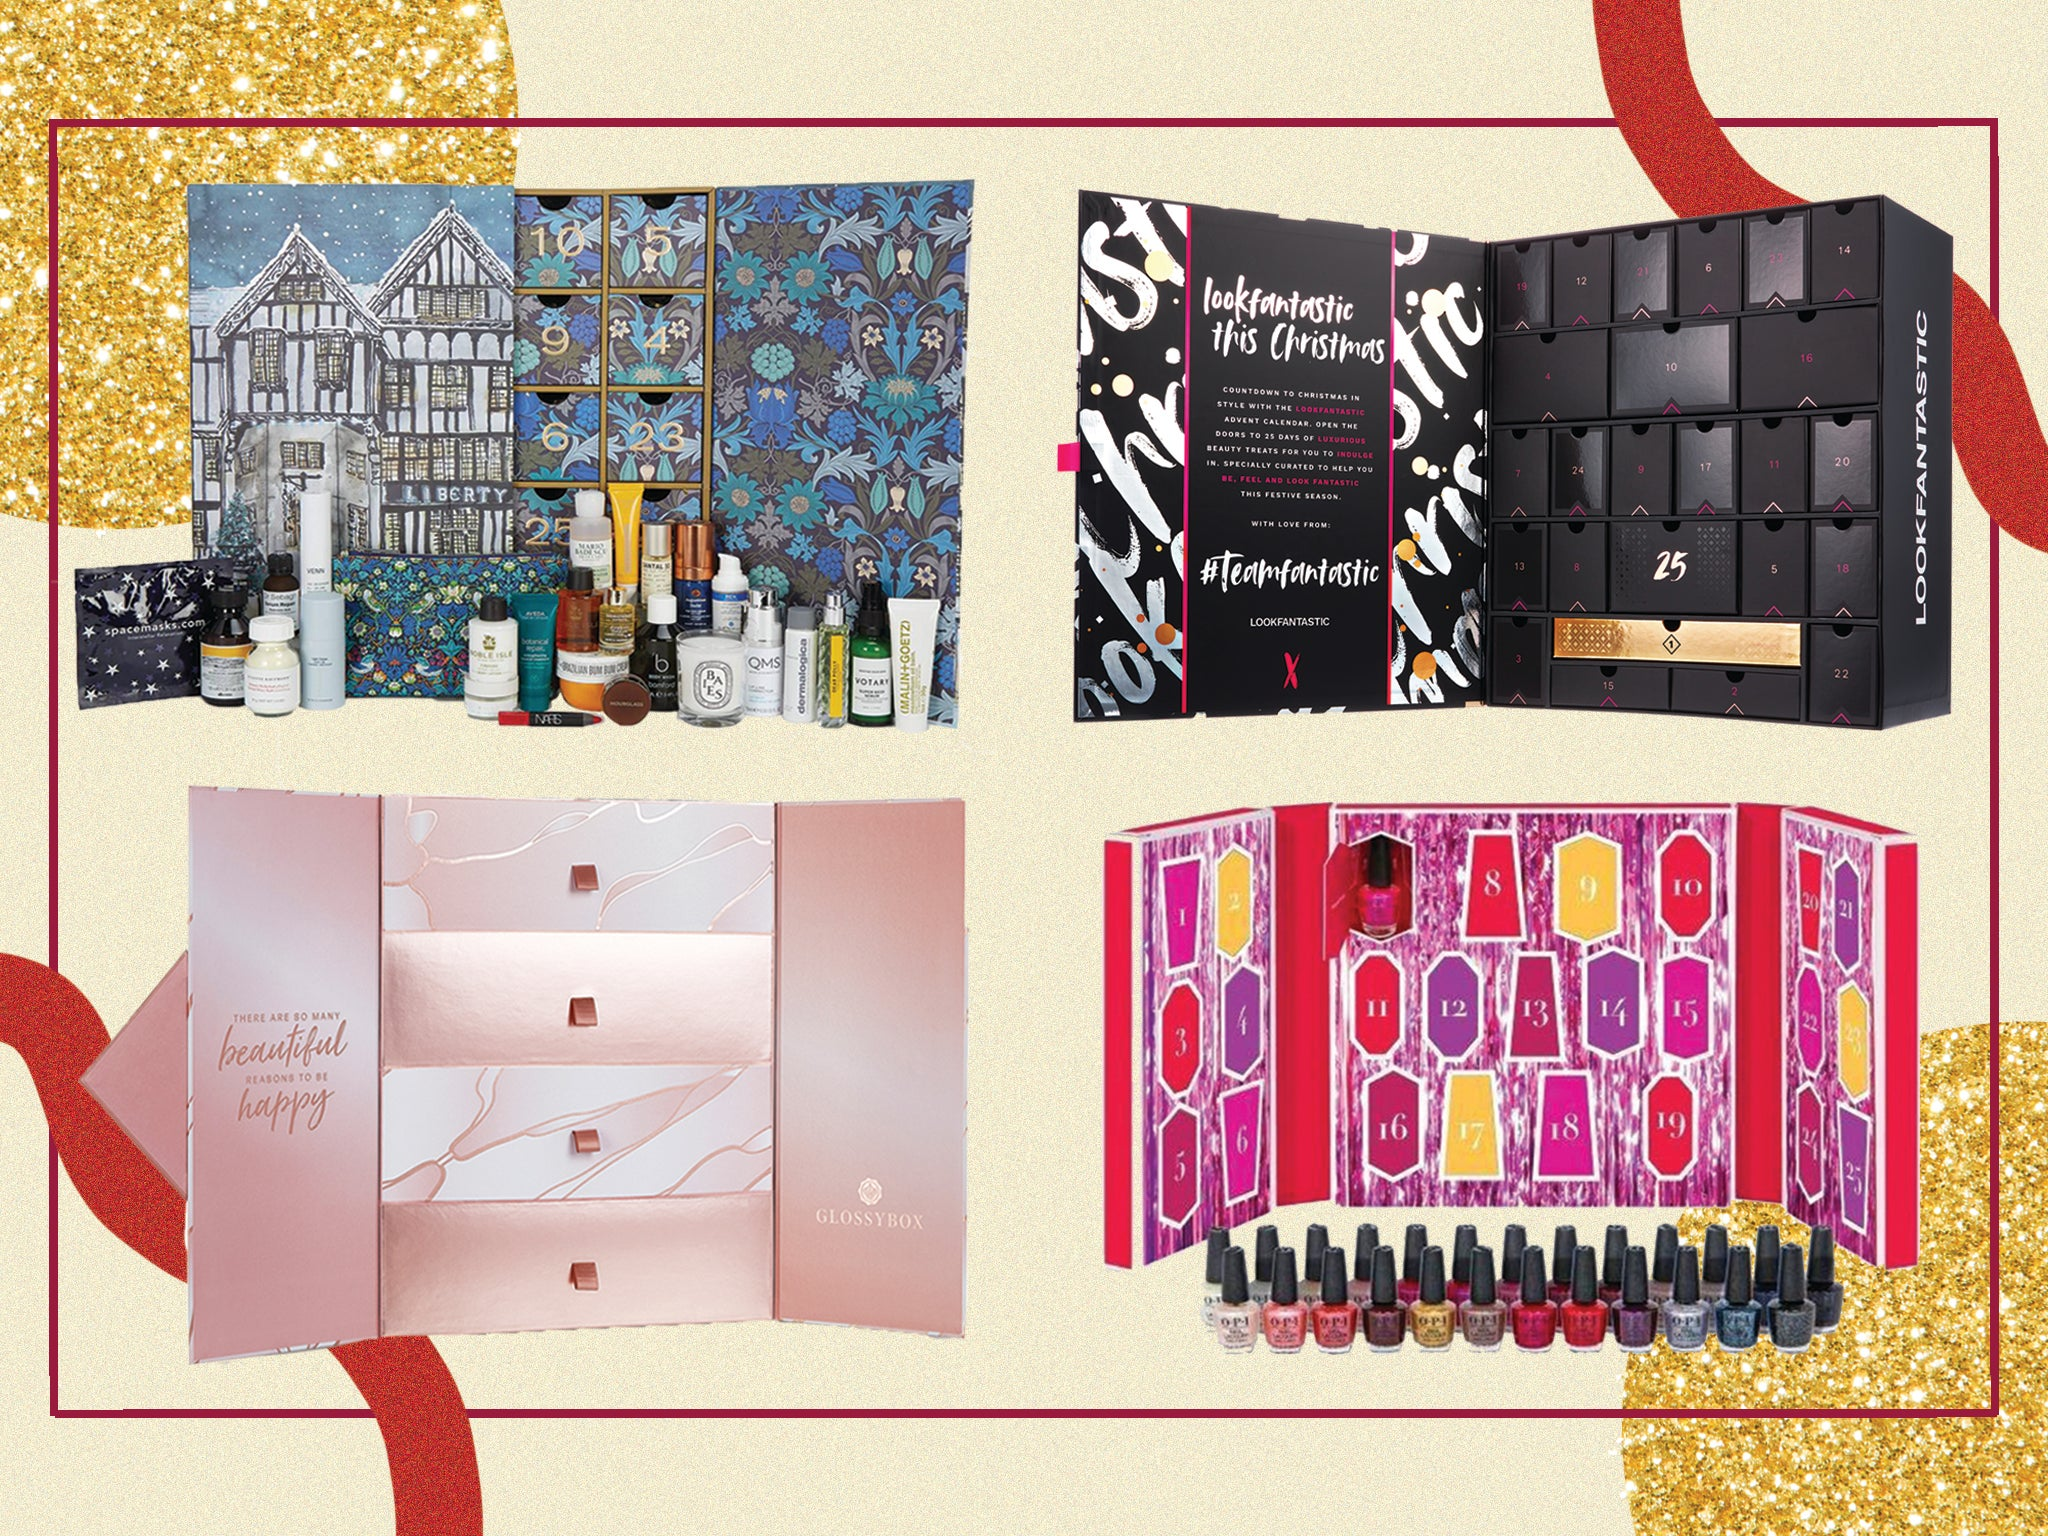 Callendar House Christmas Adventure 2020 Best beauty advent calendars 2020: Makeup, skincare and more | The